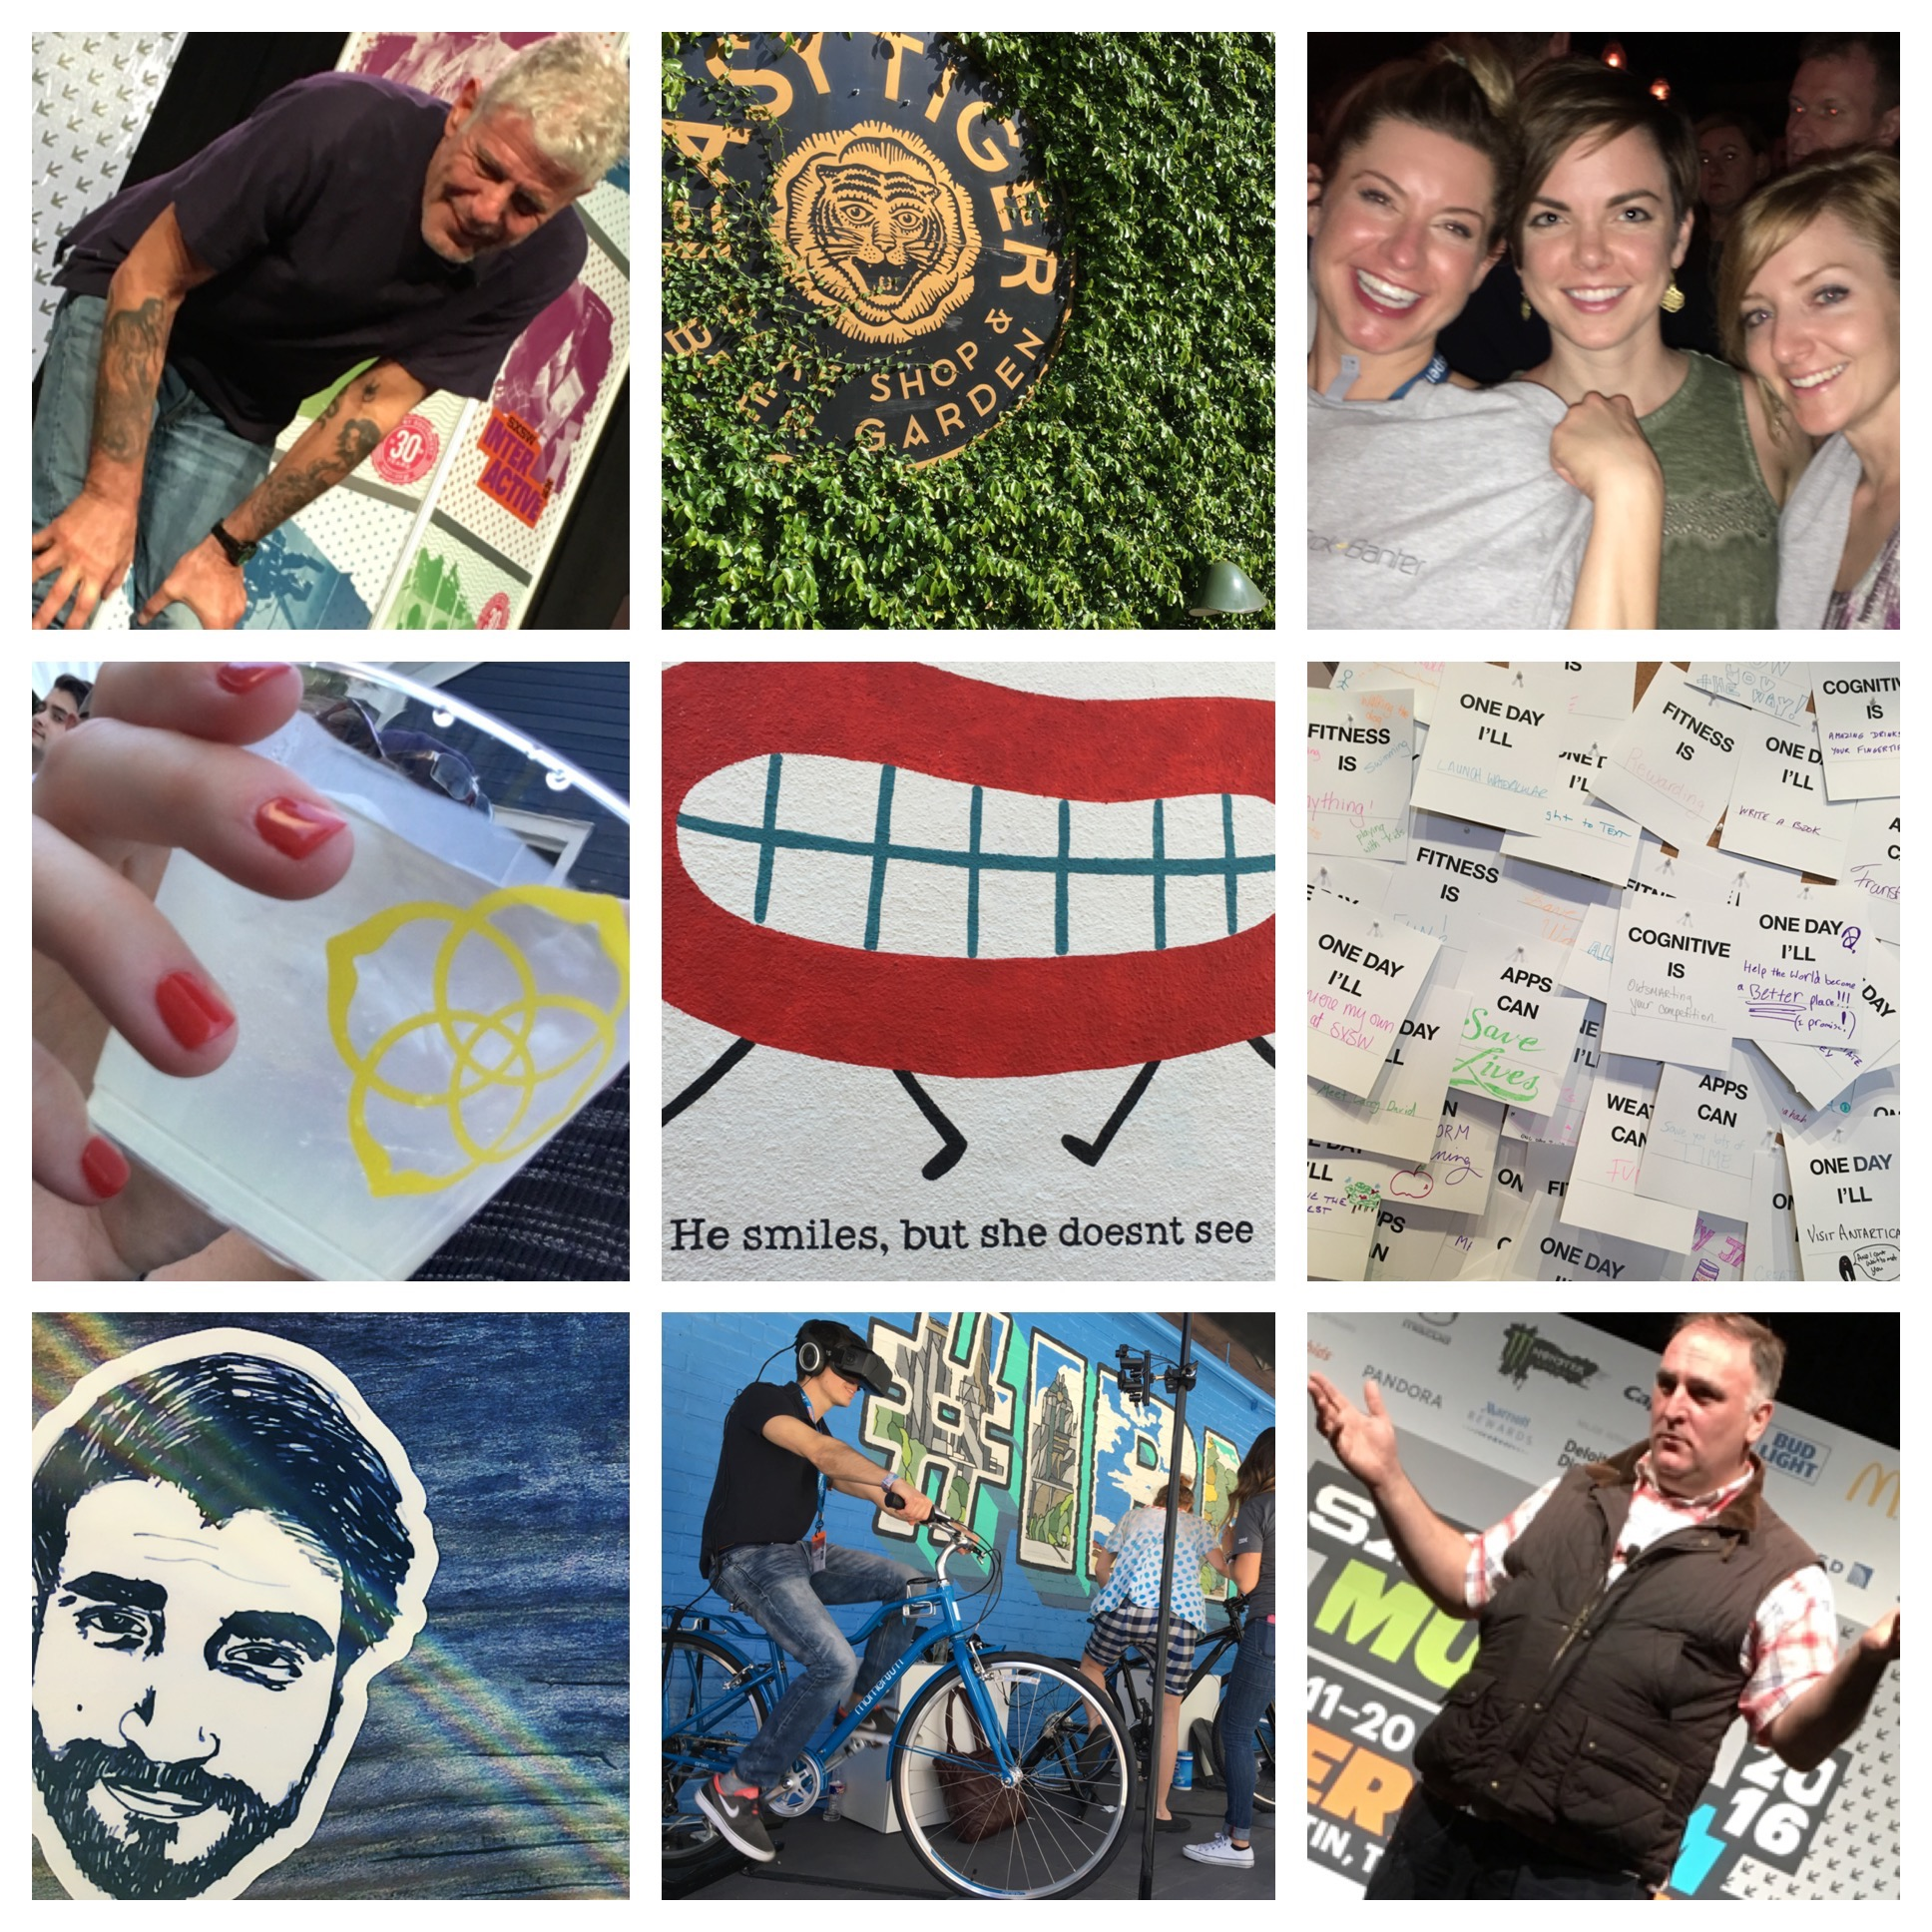 Collage of photos from South by Southwest festival, including a picture of Anthony Bourdain.